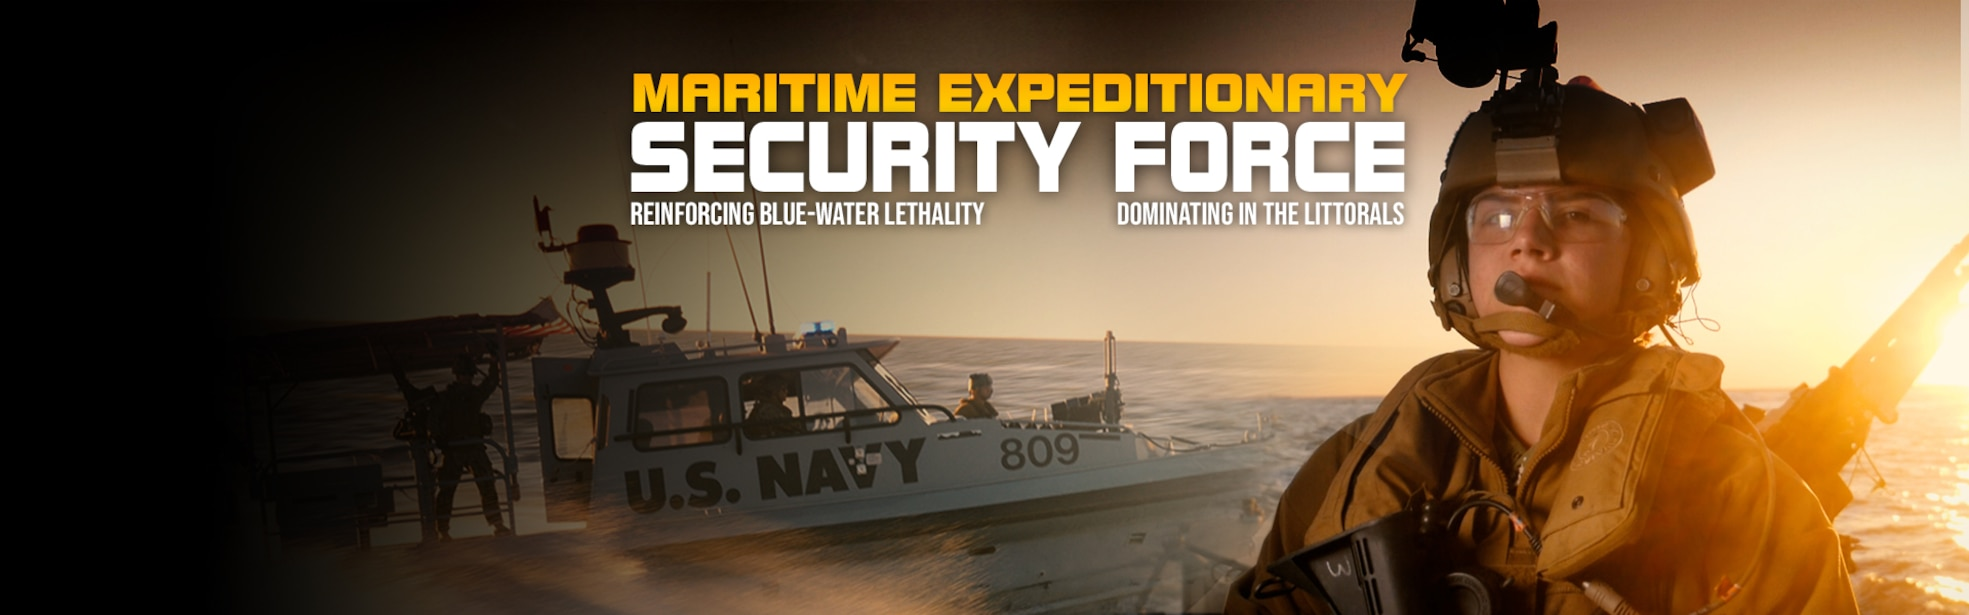 Armed Sailor on Maritime Expeditionary Security Forces surfaces craft with Maritime Expeditionary Security Forces surface craft in the background. Written Maritime Expeditionary Security Forces, Reinforcing blue water lethality. Dominating the littorals.